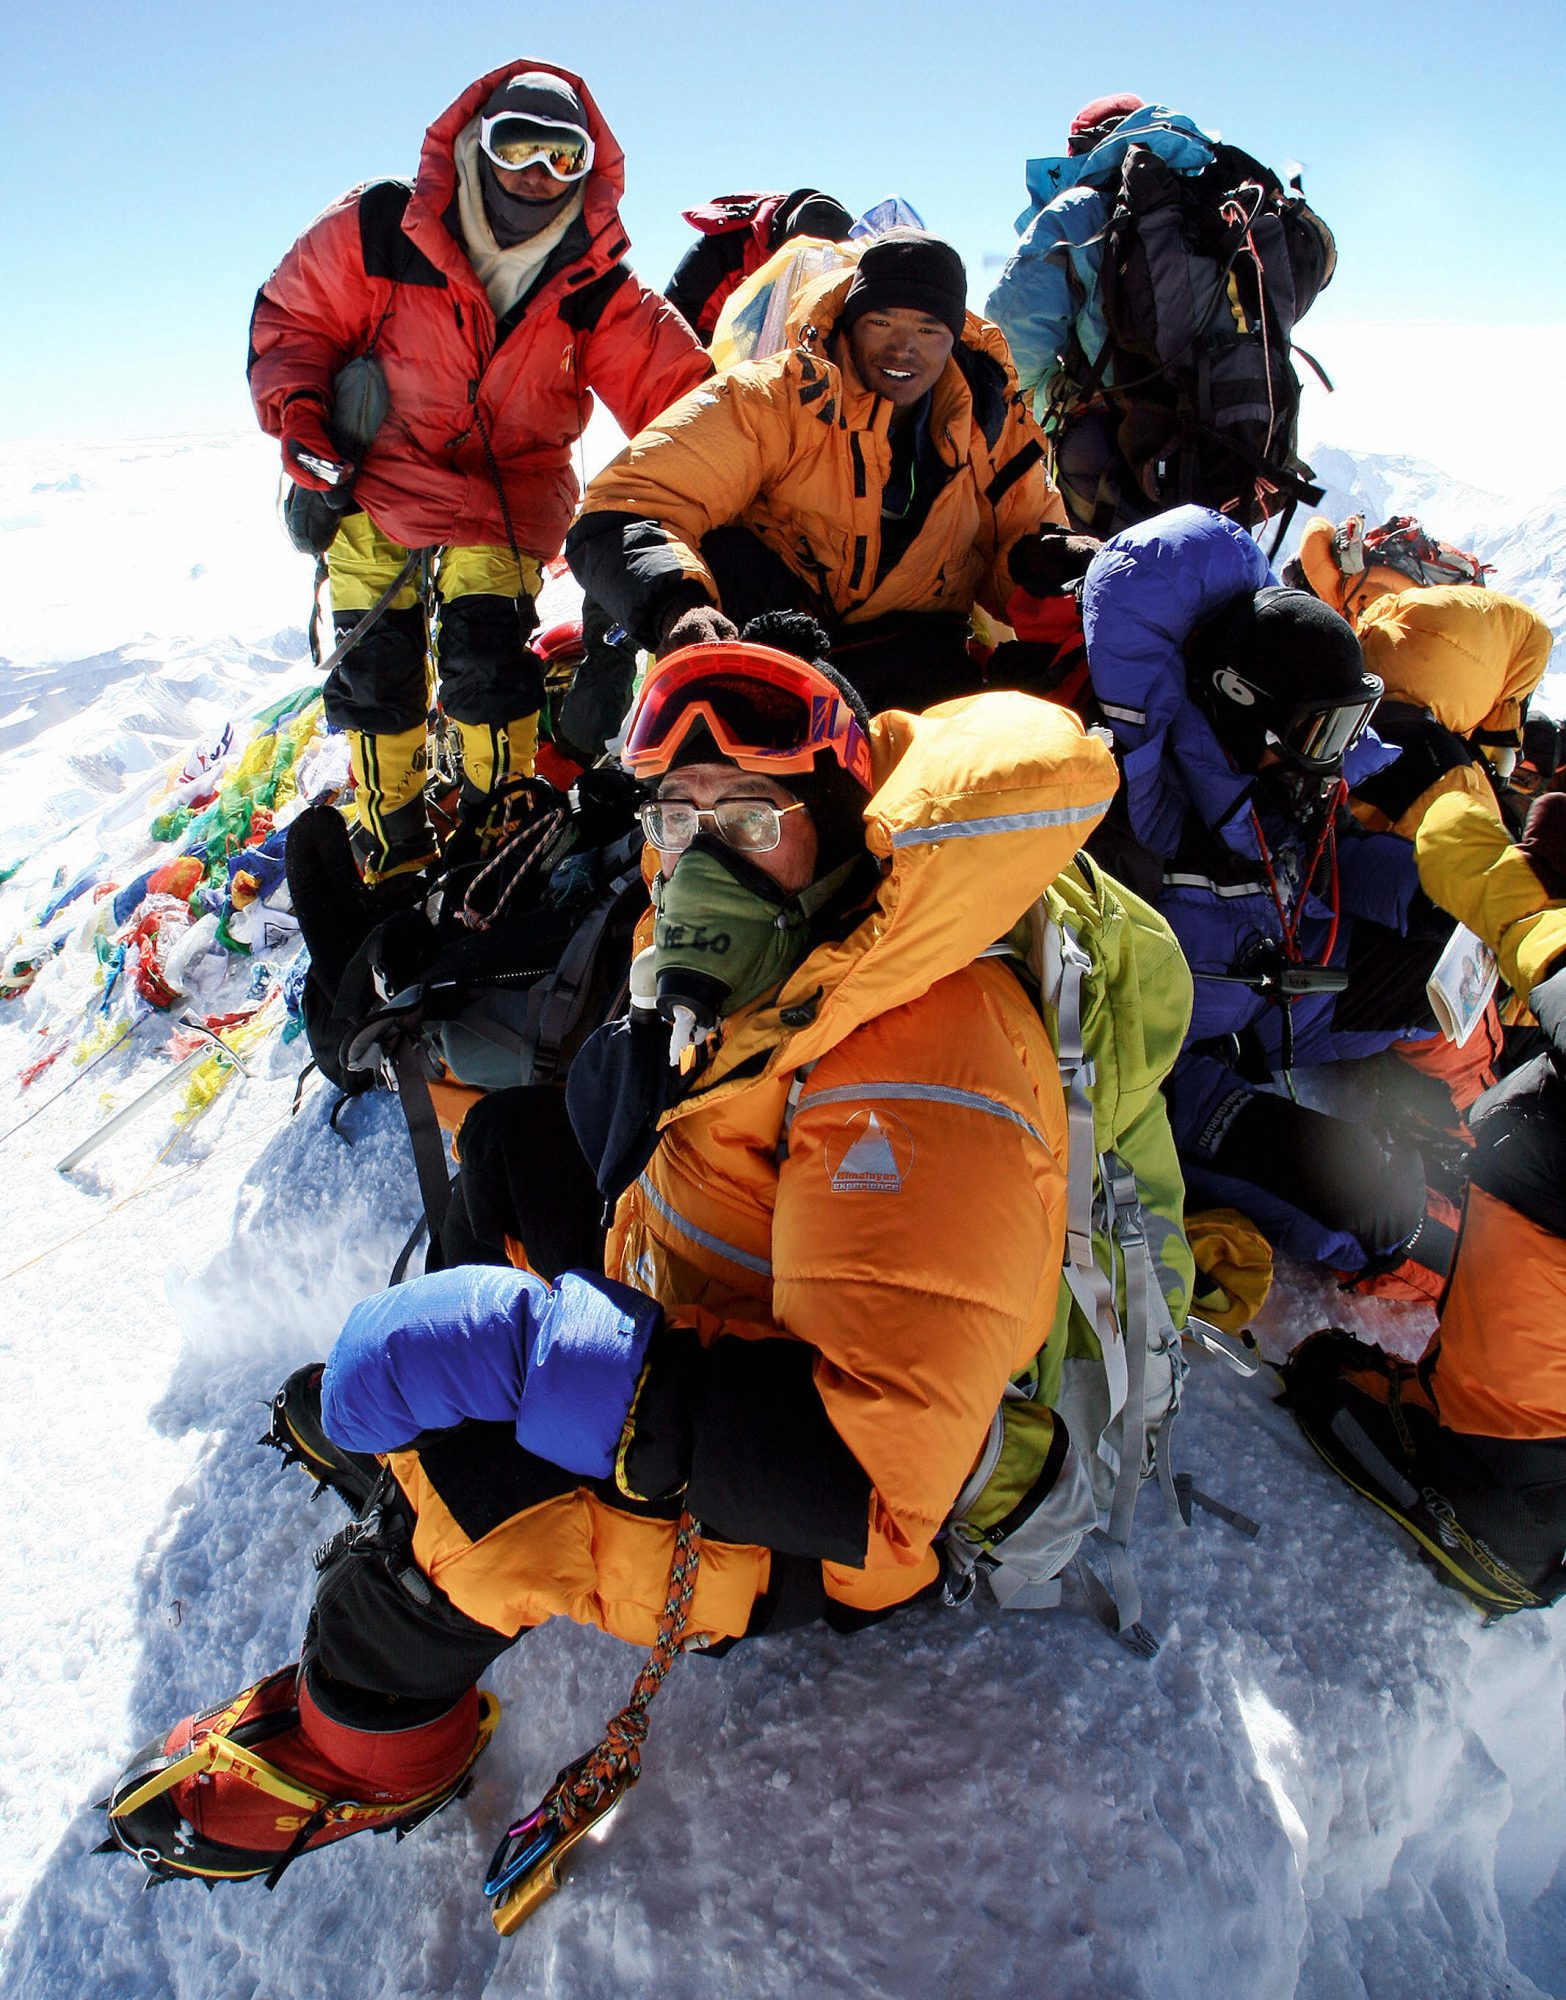 MOUNT EVEREST, NEPAL: In this picture taken, 22 May 2007, retired teacher and veteran mountaineer Katsusuke Yanagisawa, 71,(Foreground-C) rests along with others from his party on the summit of Mount Everest. As stated in a report released, 29 May 2007, a retired Japanese teacher aged 71 has become the world's oldest person to climb to the top of Mount Everest, according to a mountaineering group. The Japan Mountaineering Association said Katsusuke Yanagisawa reached the top of the world's highest mountain on May 22. AFP PHOTO/HAND OUT /HIRO (Photo credit should read HIRO YAMAGATA/AFP via Getty Images)